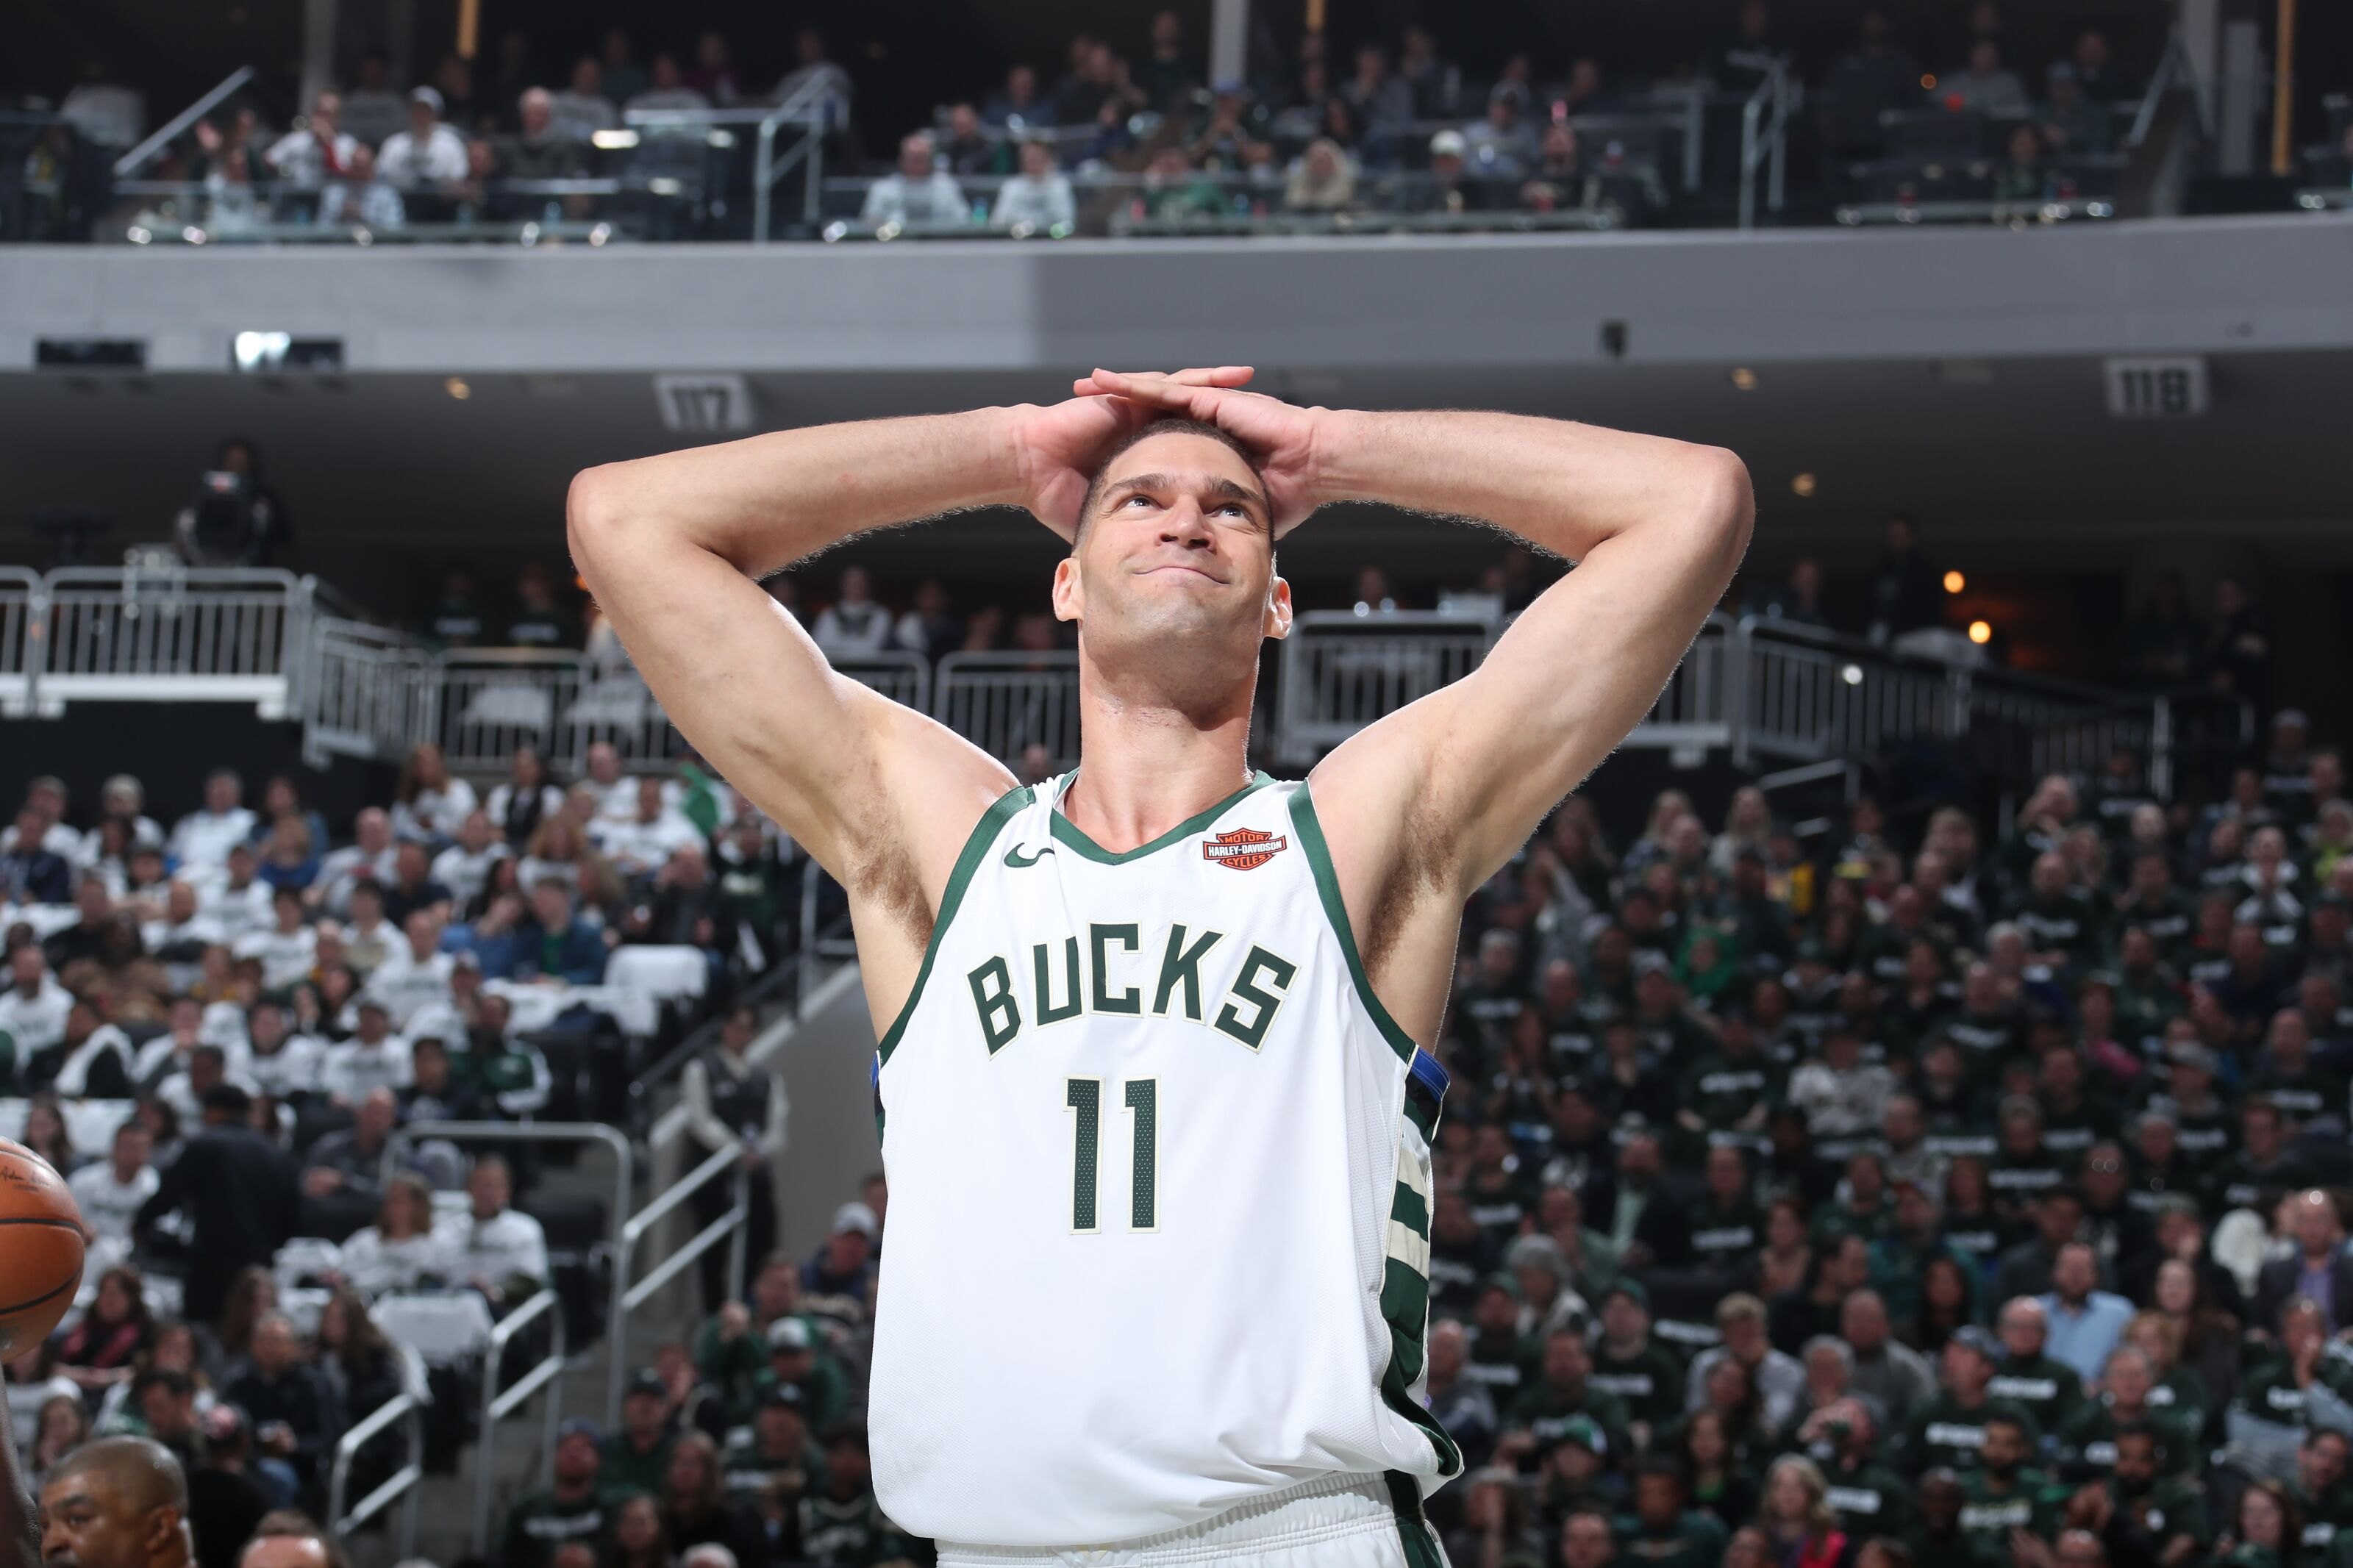 MILWAUKEE, WI - APRIL 14: Brook Lopez #11 of the Milwaukee Bucks smiles against the Detroit Pistons during Game One of Round One of the 2019 NBA Playoffs on April 14, 2019 at Fiserv Forum in Milwaukee, Wisconsin. NOTE TO USER: User expressly acknowledges and agrees that, by downloading and or using this photograph, User is consenting to the terms and conditions of the Getty Images License Agreement. Mandatory Copyright Notice: Copyright 2019 NBAE (Photo by Nathaniel S. Butler/NBAE via Getty Images)